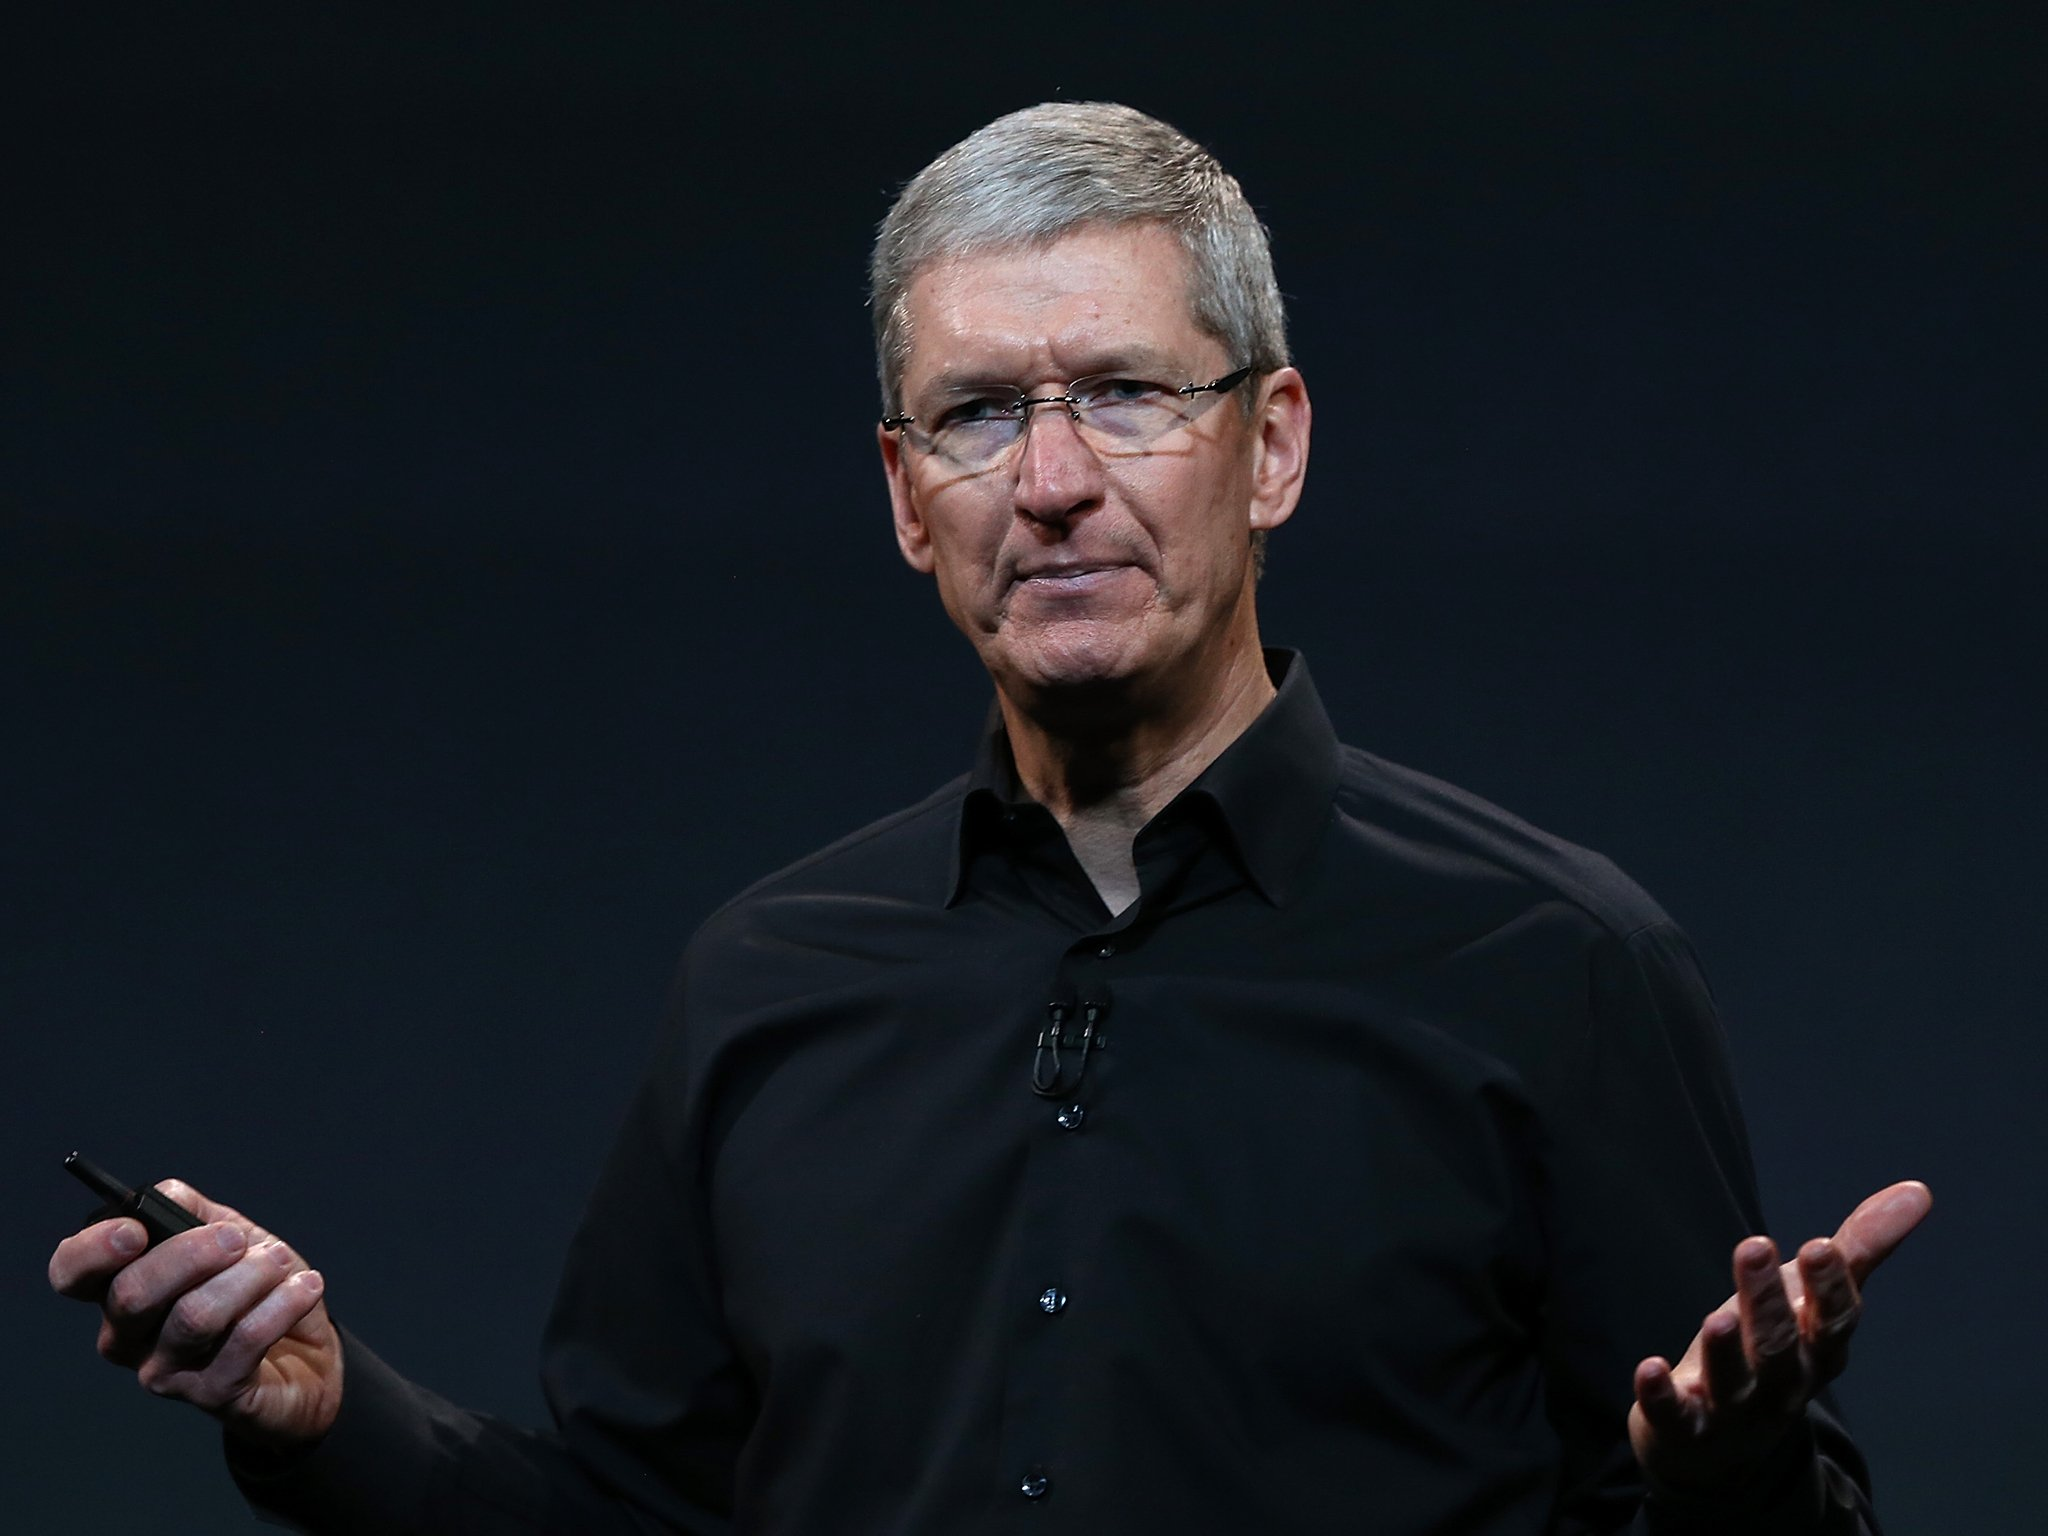 2048x1536 - Tim Cook Wallpapers 30